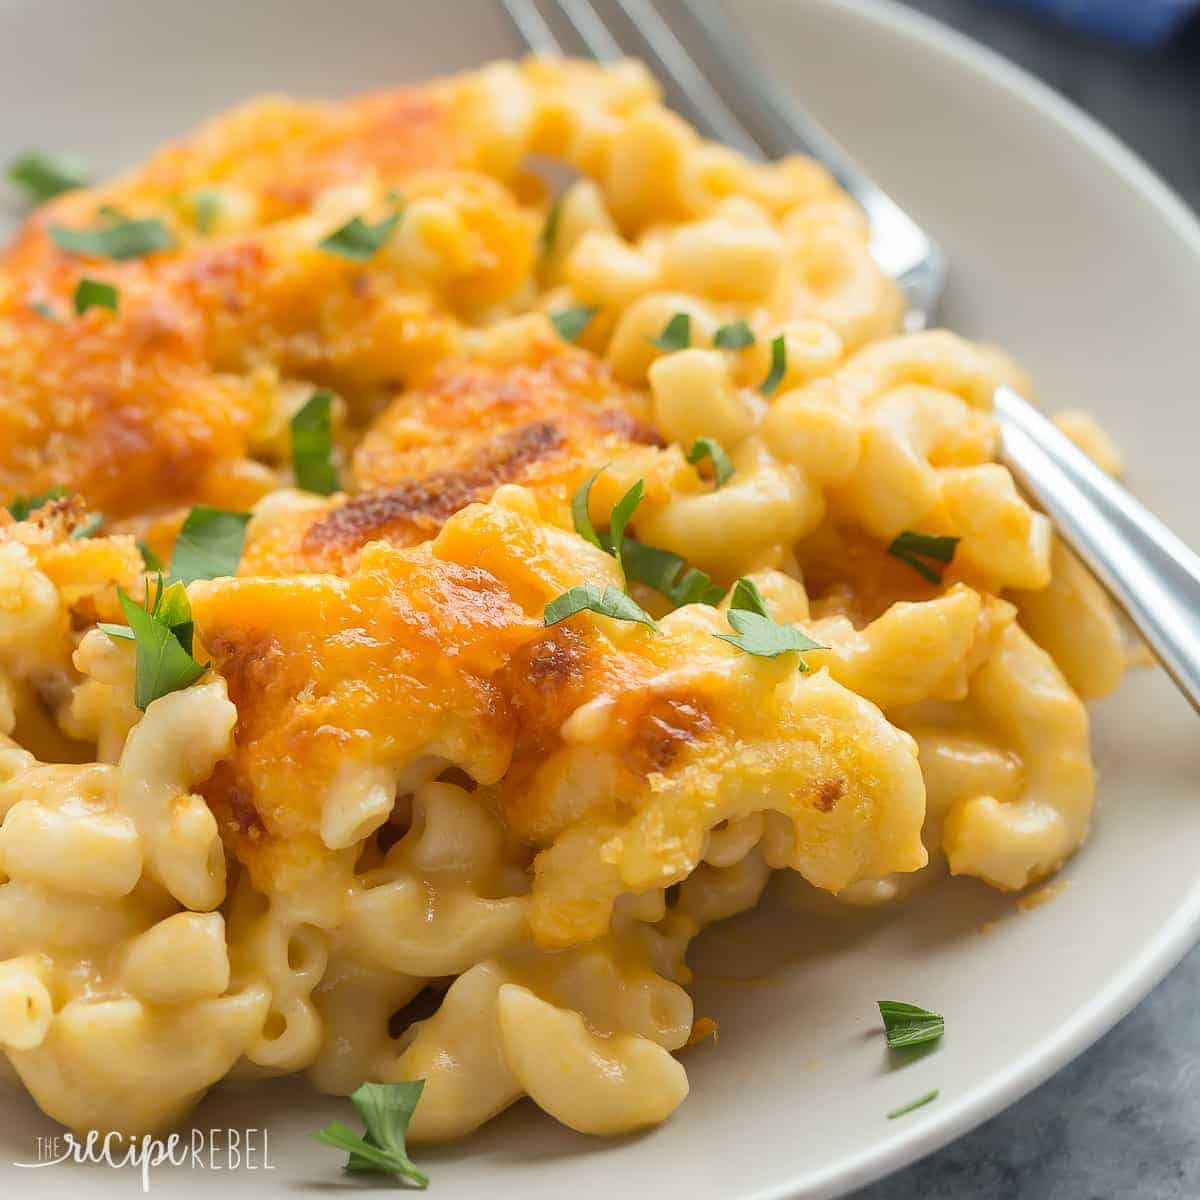 This Healthier Baked Mac and Cheese is made with whole wheat pasta, low fat milk, and chicken broth but is just as creamy and cheese as ever! It's a great make ahead meal for those busy weeknights!